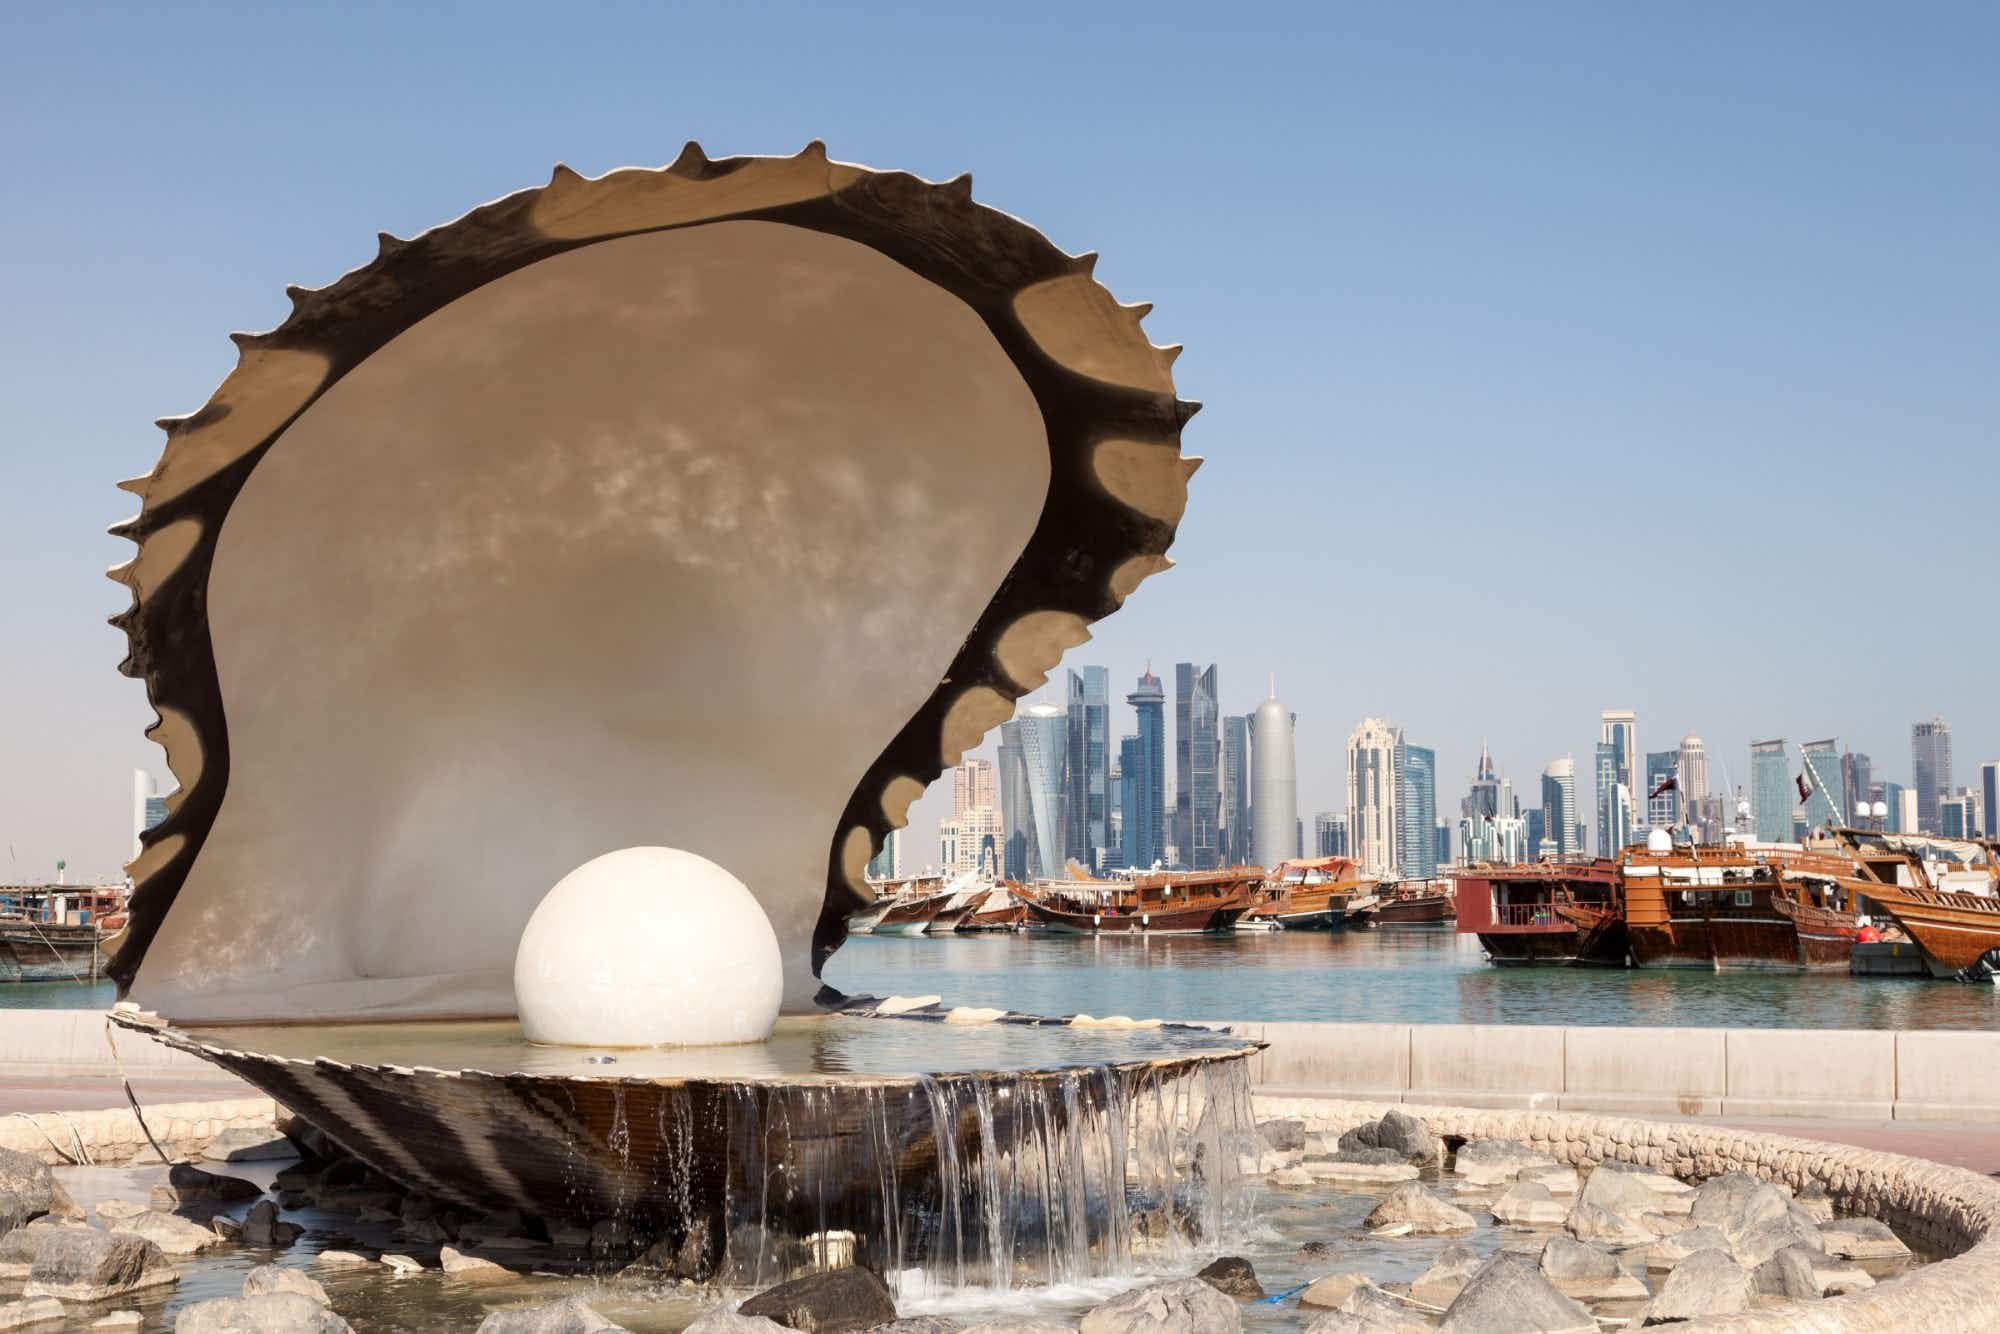 Qatar is offering deals and visa-free entry to summer travellers